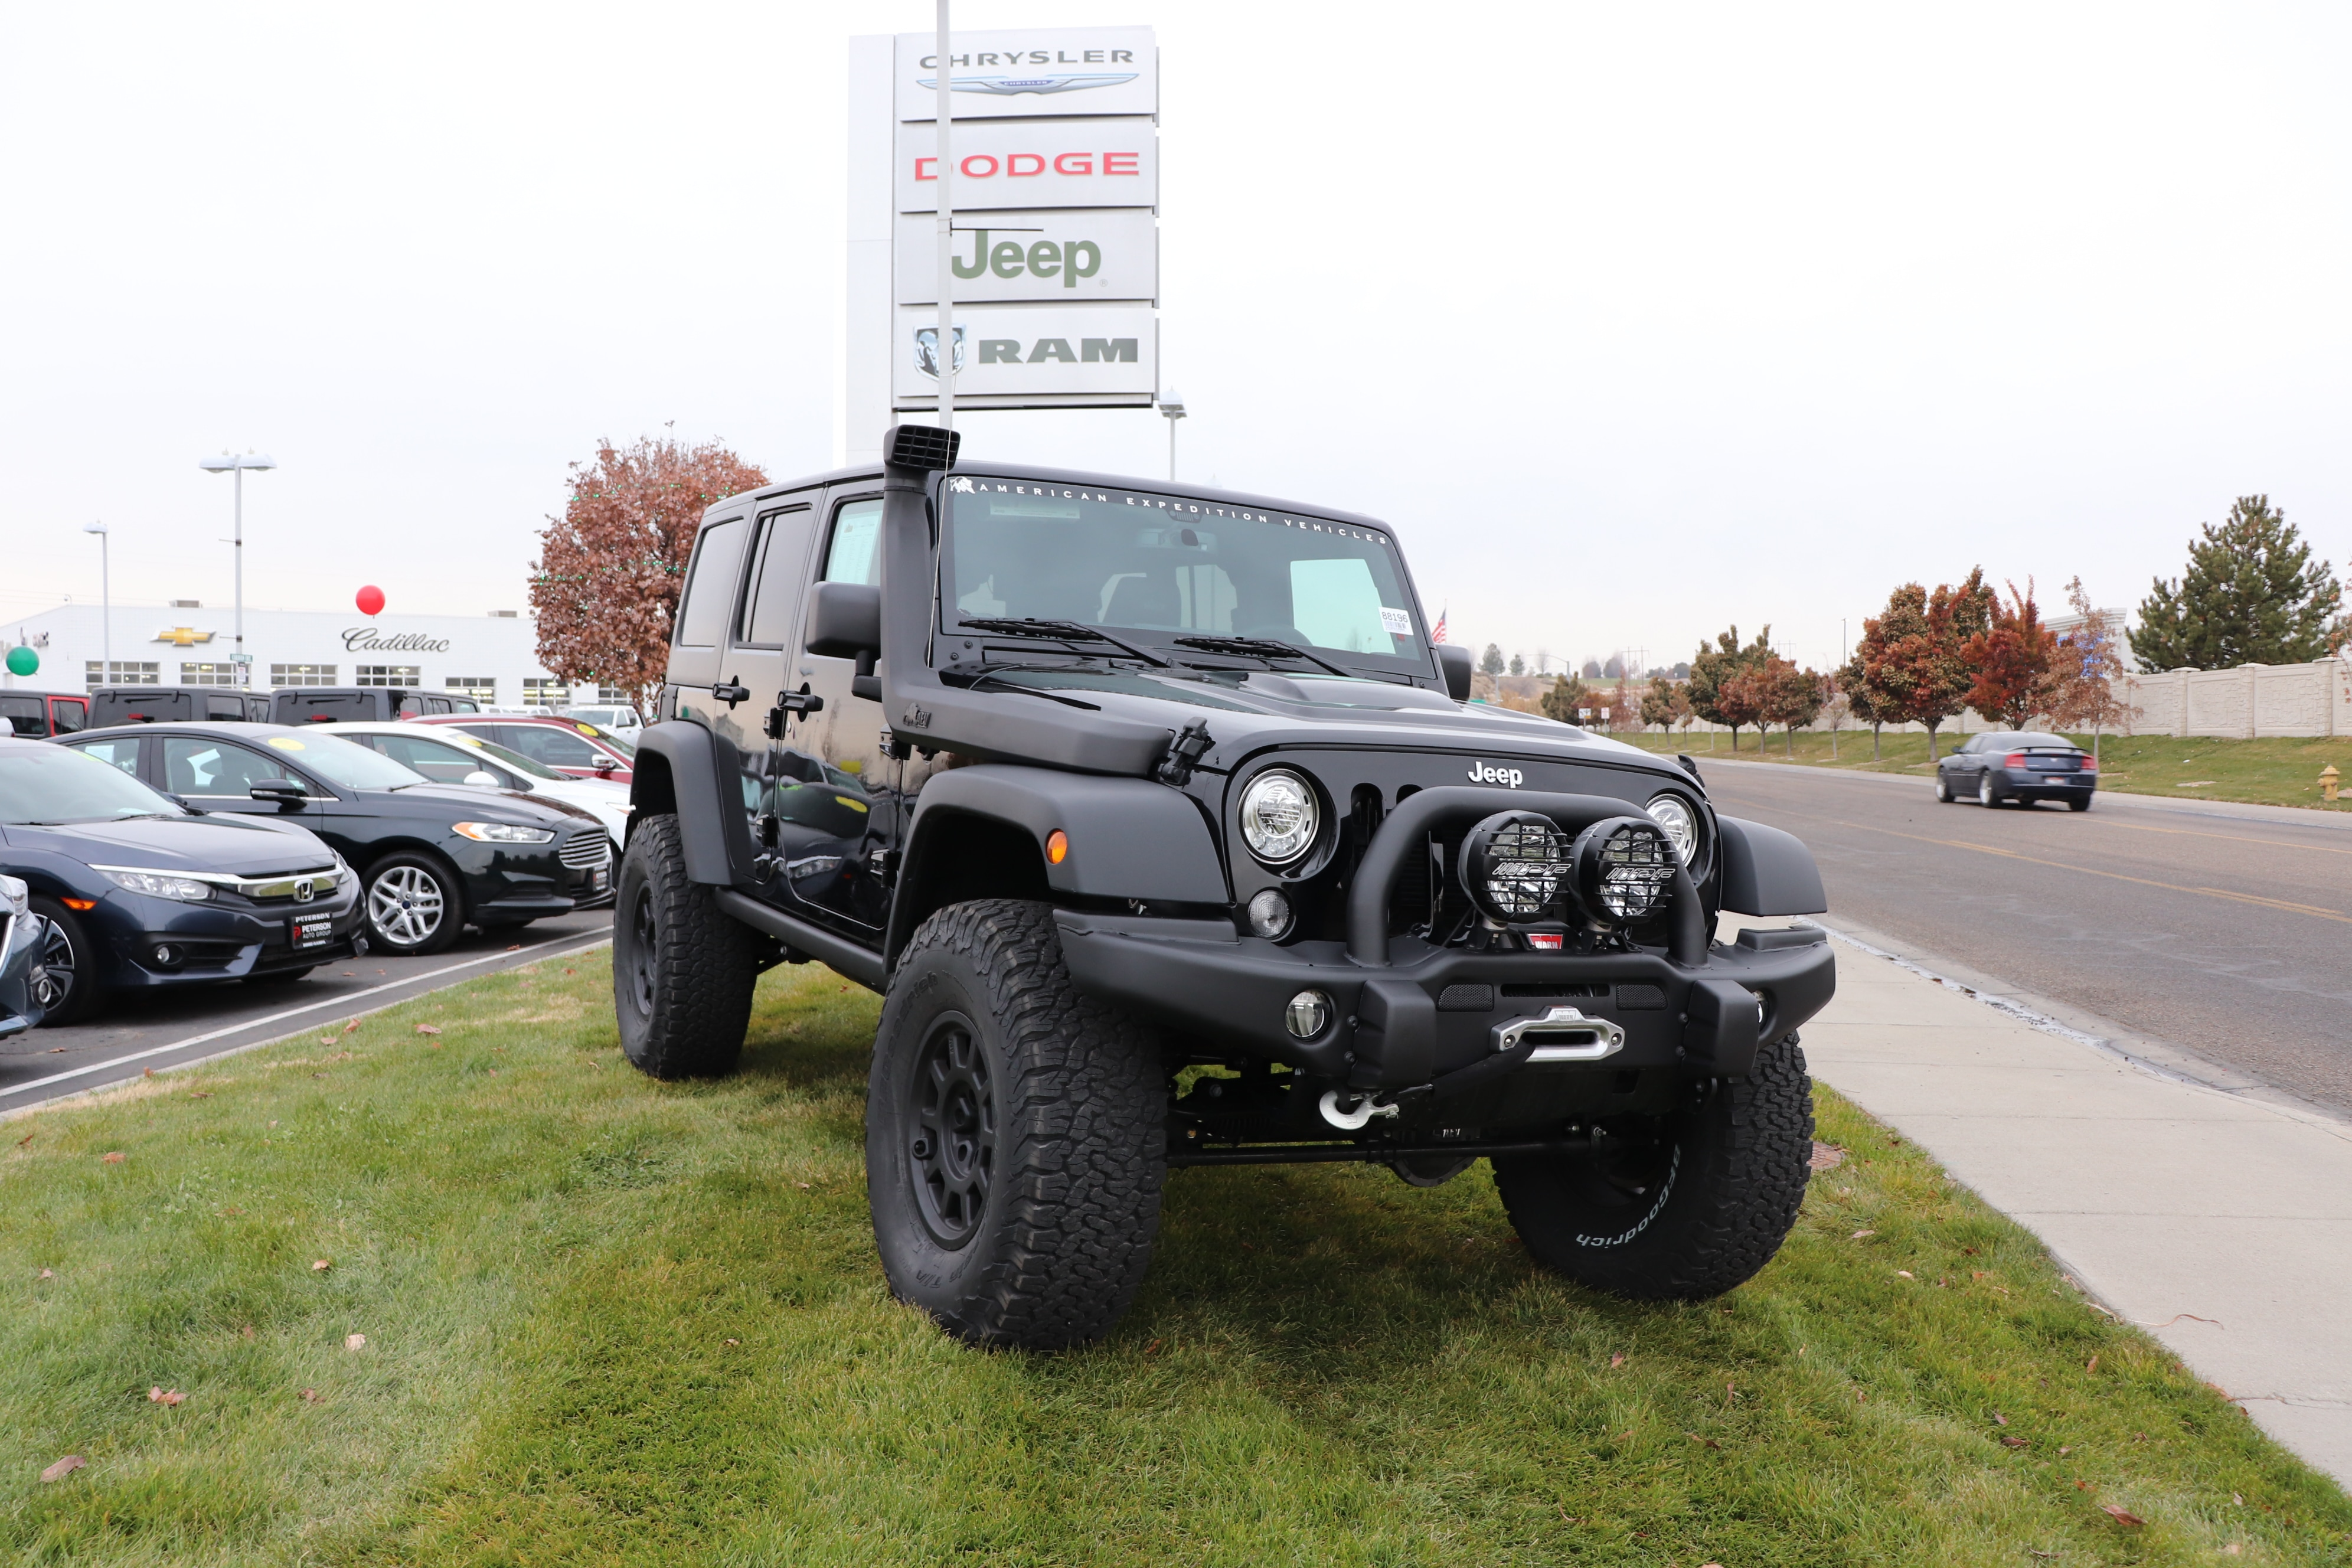 New 2018 Jeep Wrangler Unlimited For Sale at Peterson Dodge Chrysler Jeep  Ram | VIN: 1C4BJWFG2JL850693